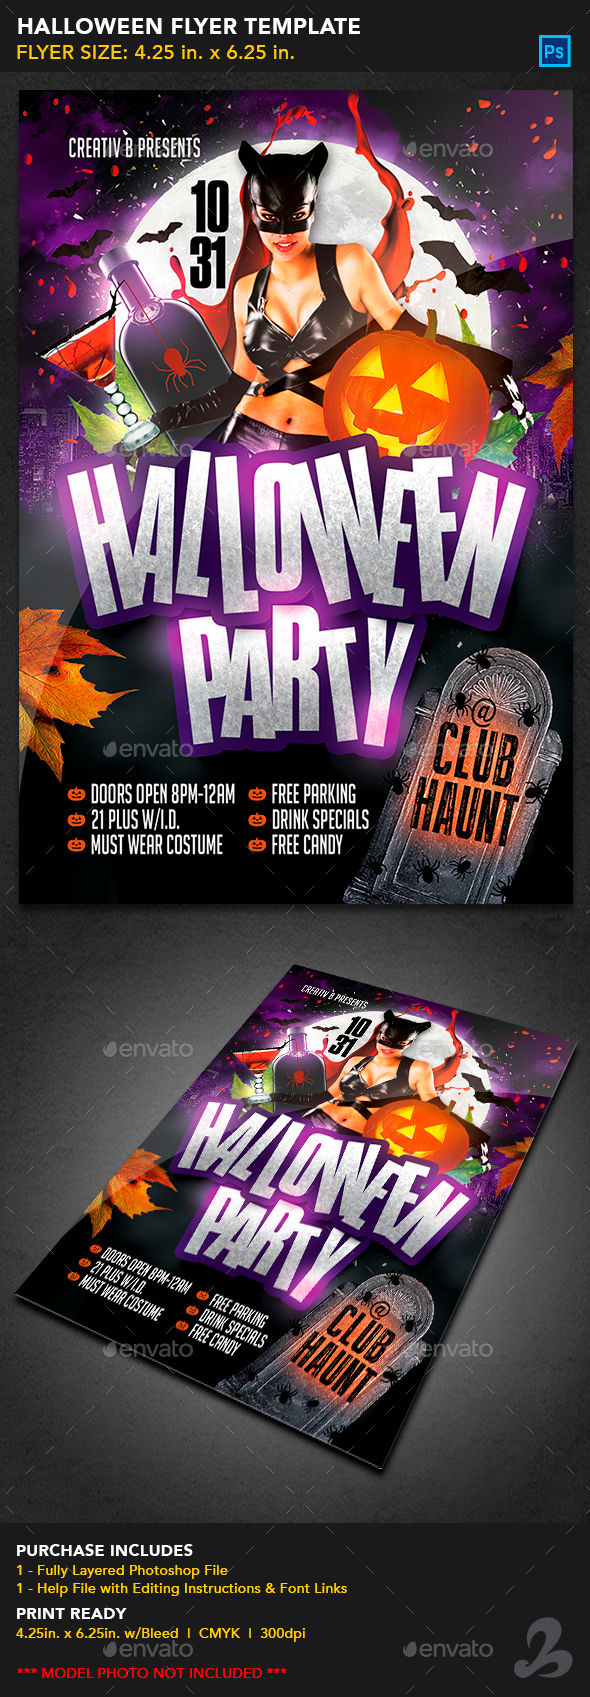 Halloween Party Flyer Template by CreativB (Halloween party flyer)